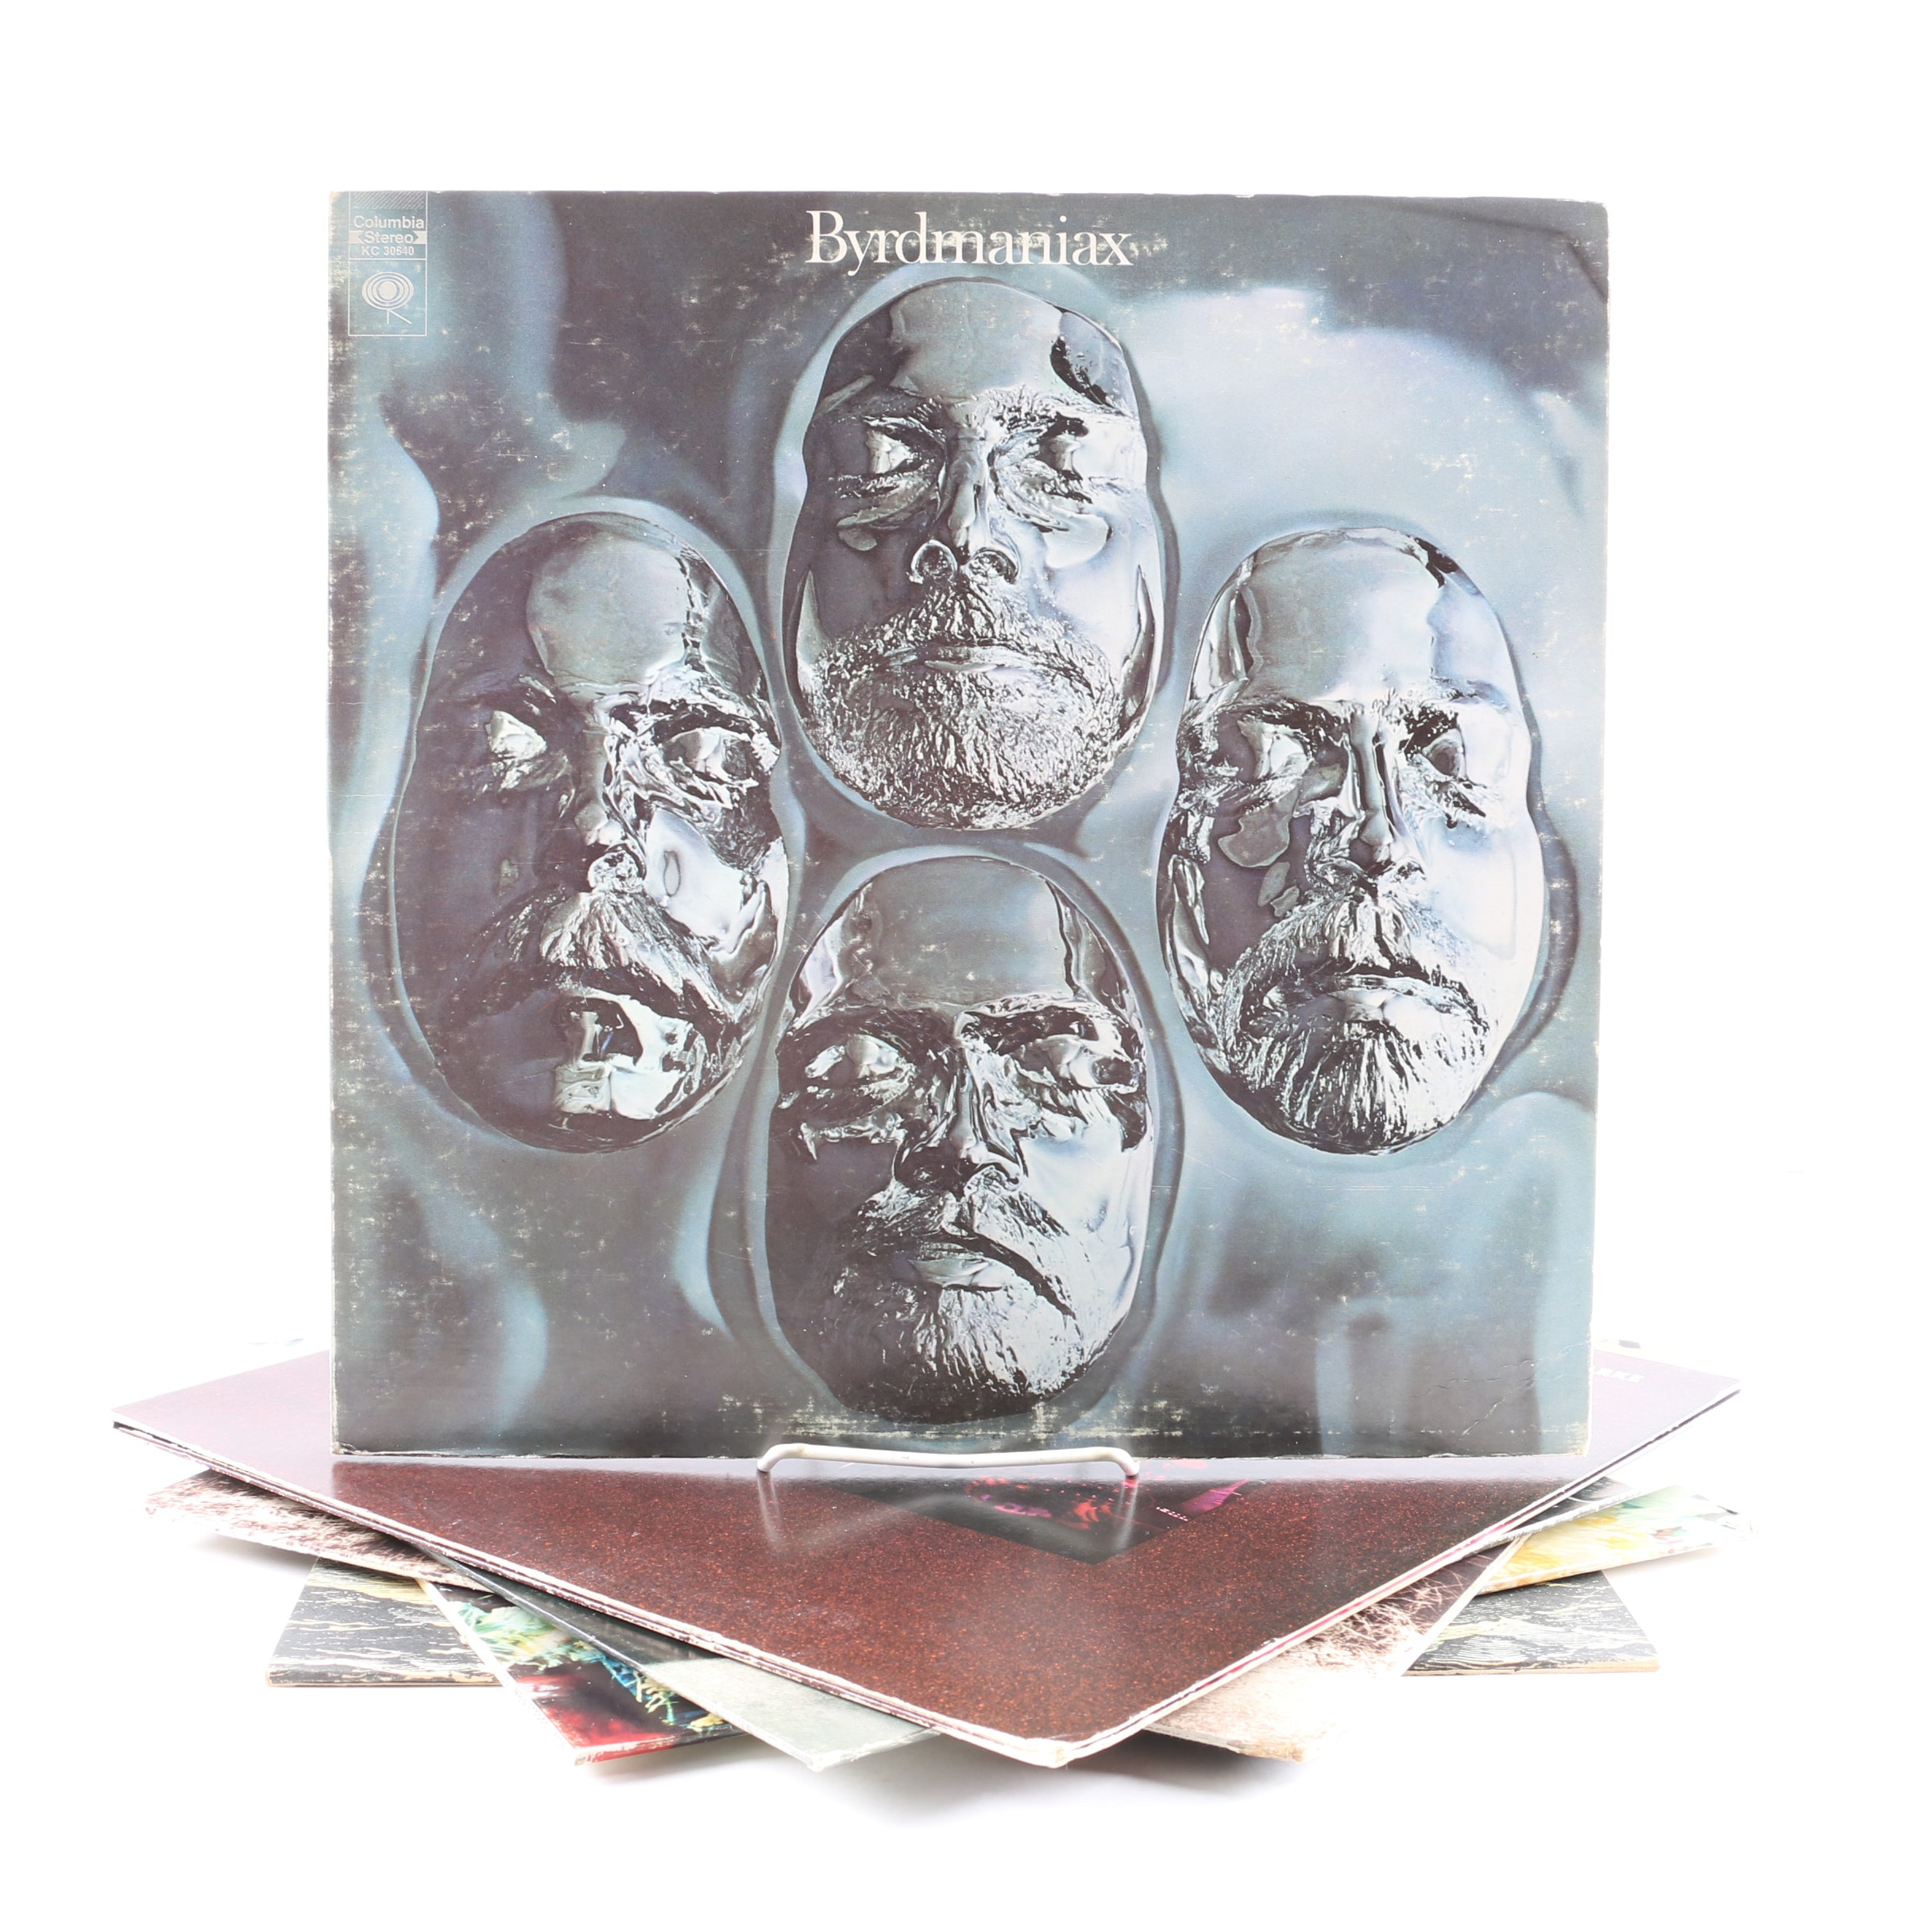 """The Byrds and Roger McGuinn LPs Including """"Byrdmaniax"""" and """"Farther Along"""""""